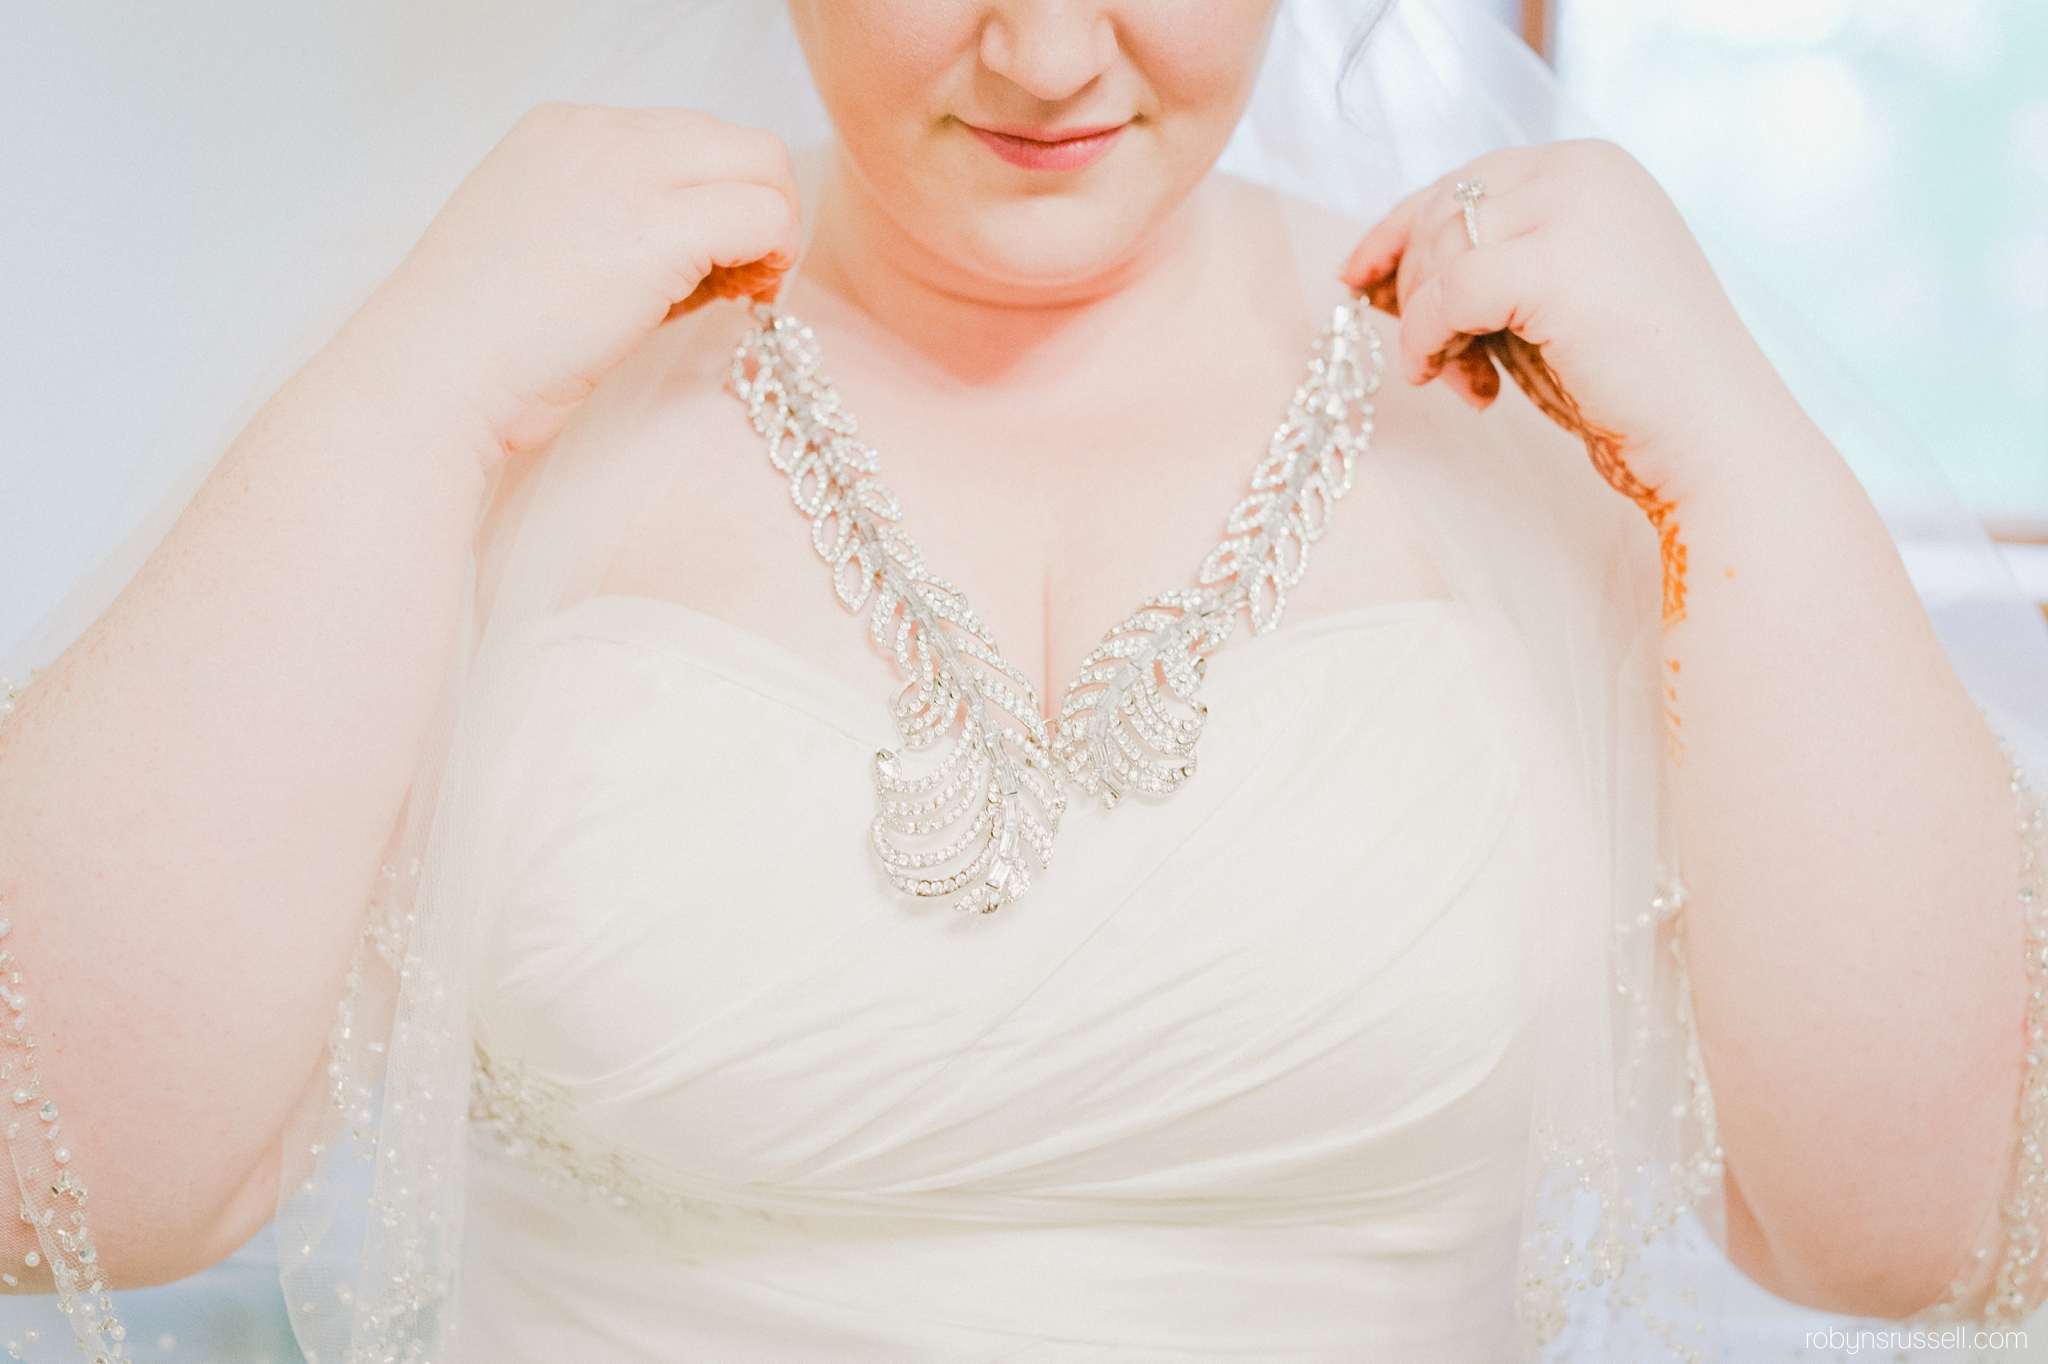 7-bride-wearing-beautiful-necklace-on-wedding-day.jpg